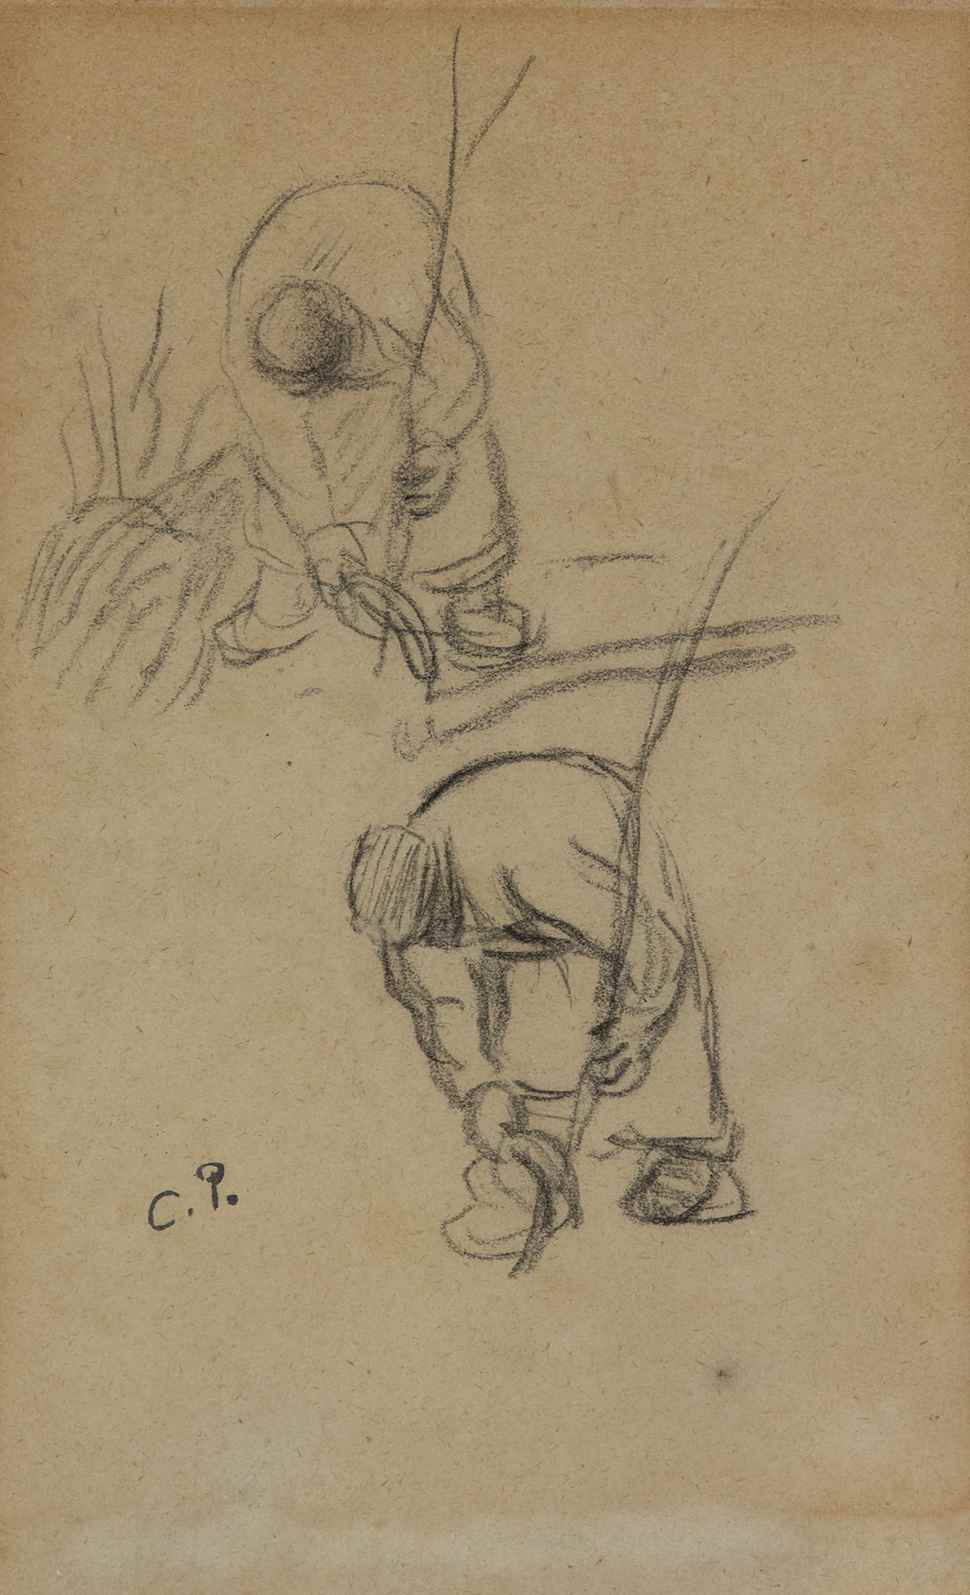 Two studies of a male peasant working - Camille Pissarro (1830 - 1903)